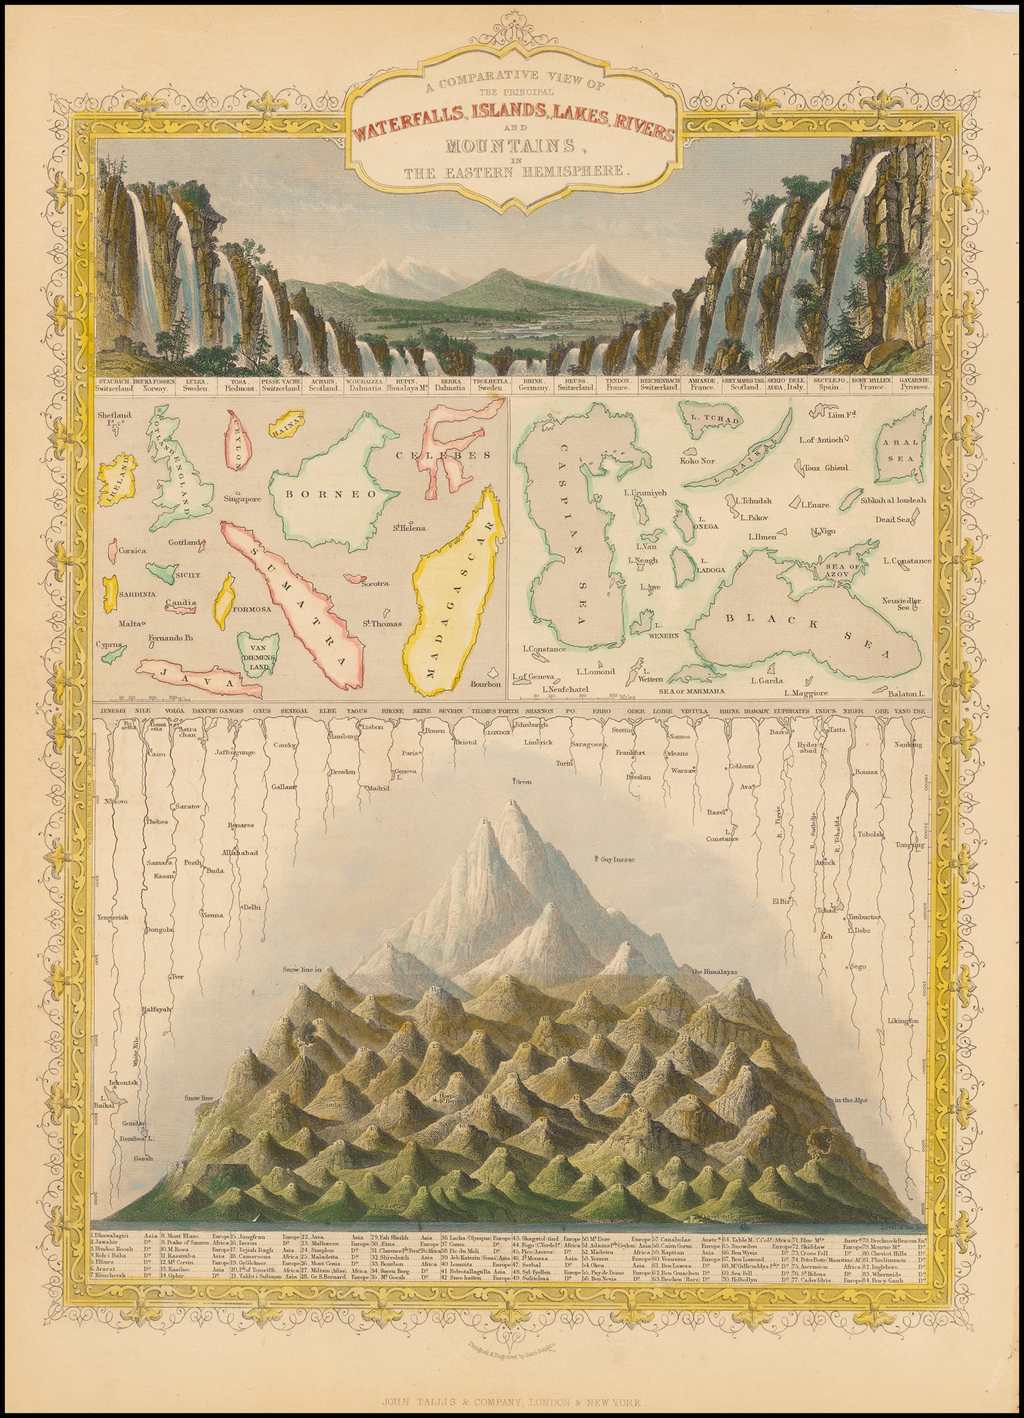 A Comparative View of the Principal Waterfalls, Islands, Lakes, Rivers, and Mountains in the Eastern Hemisphere By John Tallis